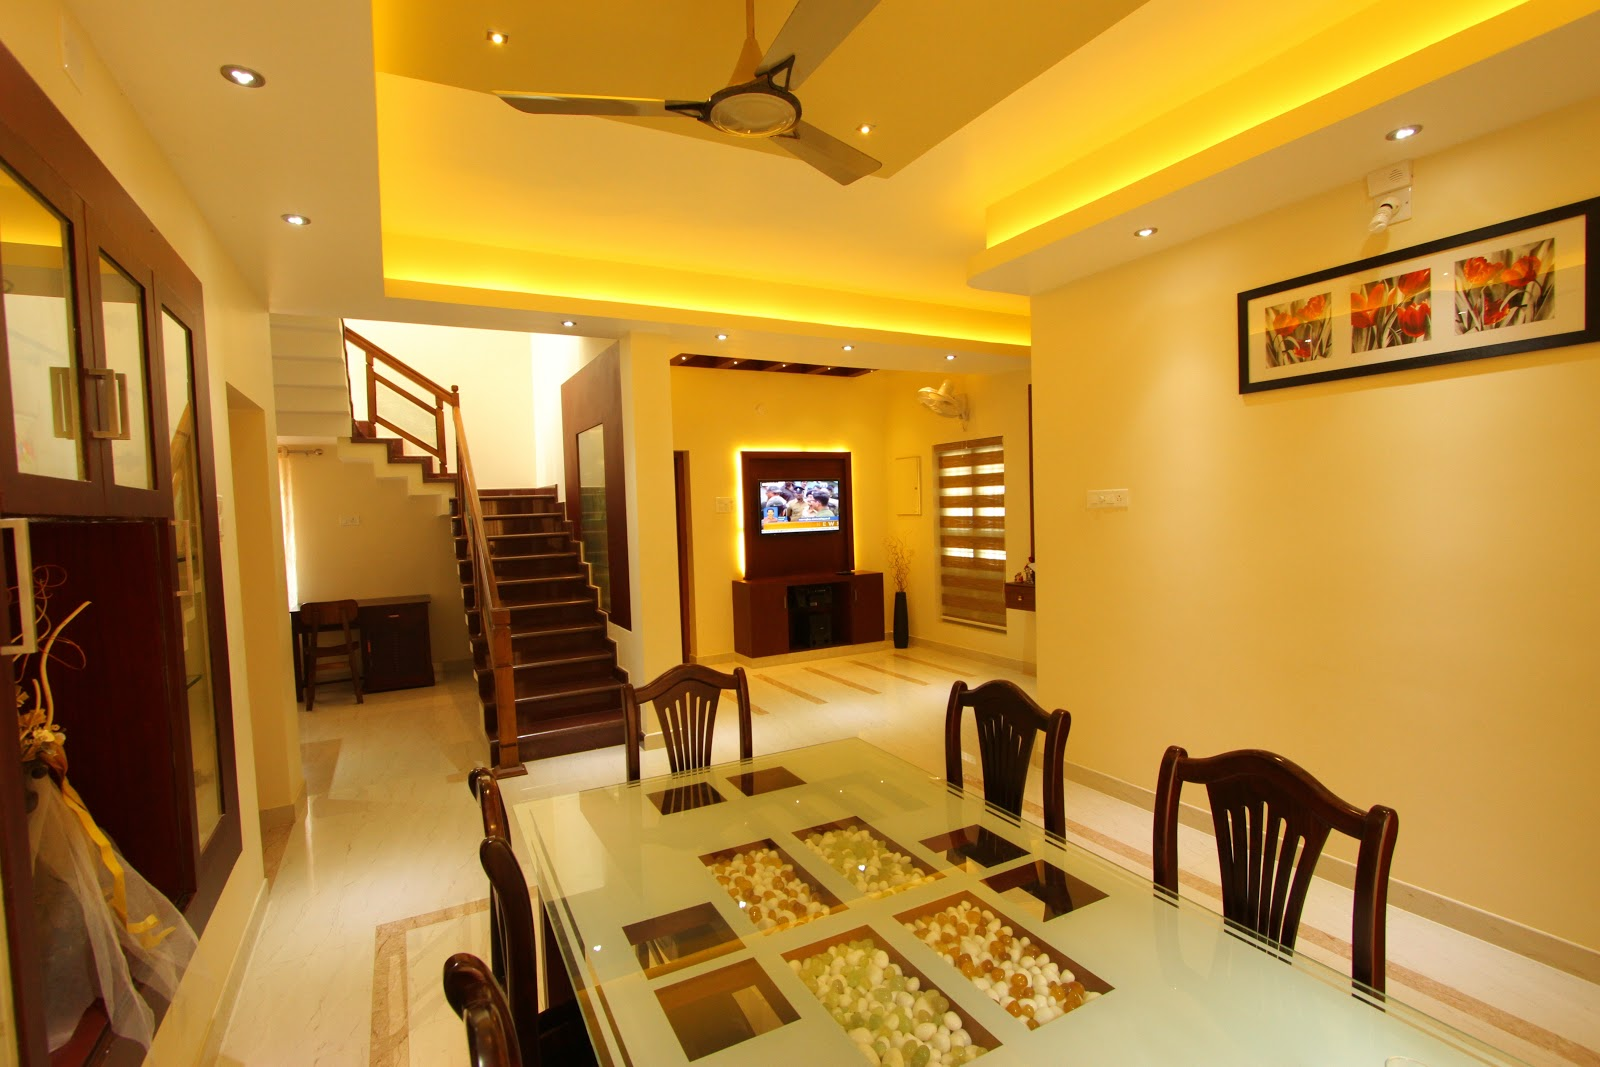 Shilpakala interiors award winning home interior design for Interior designs videos